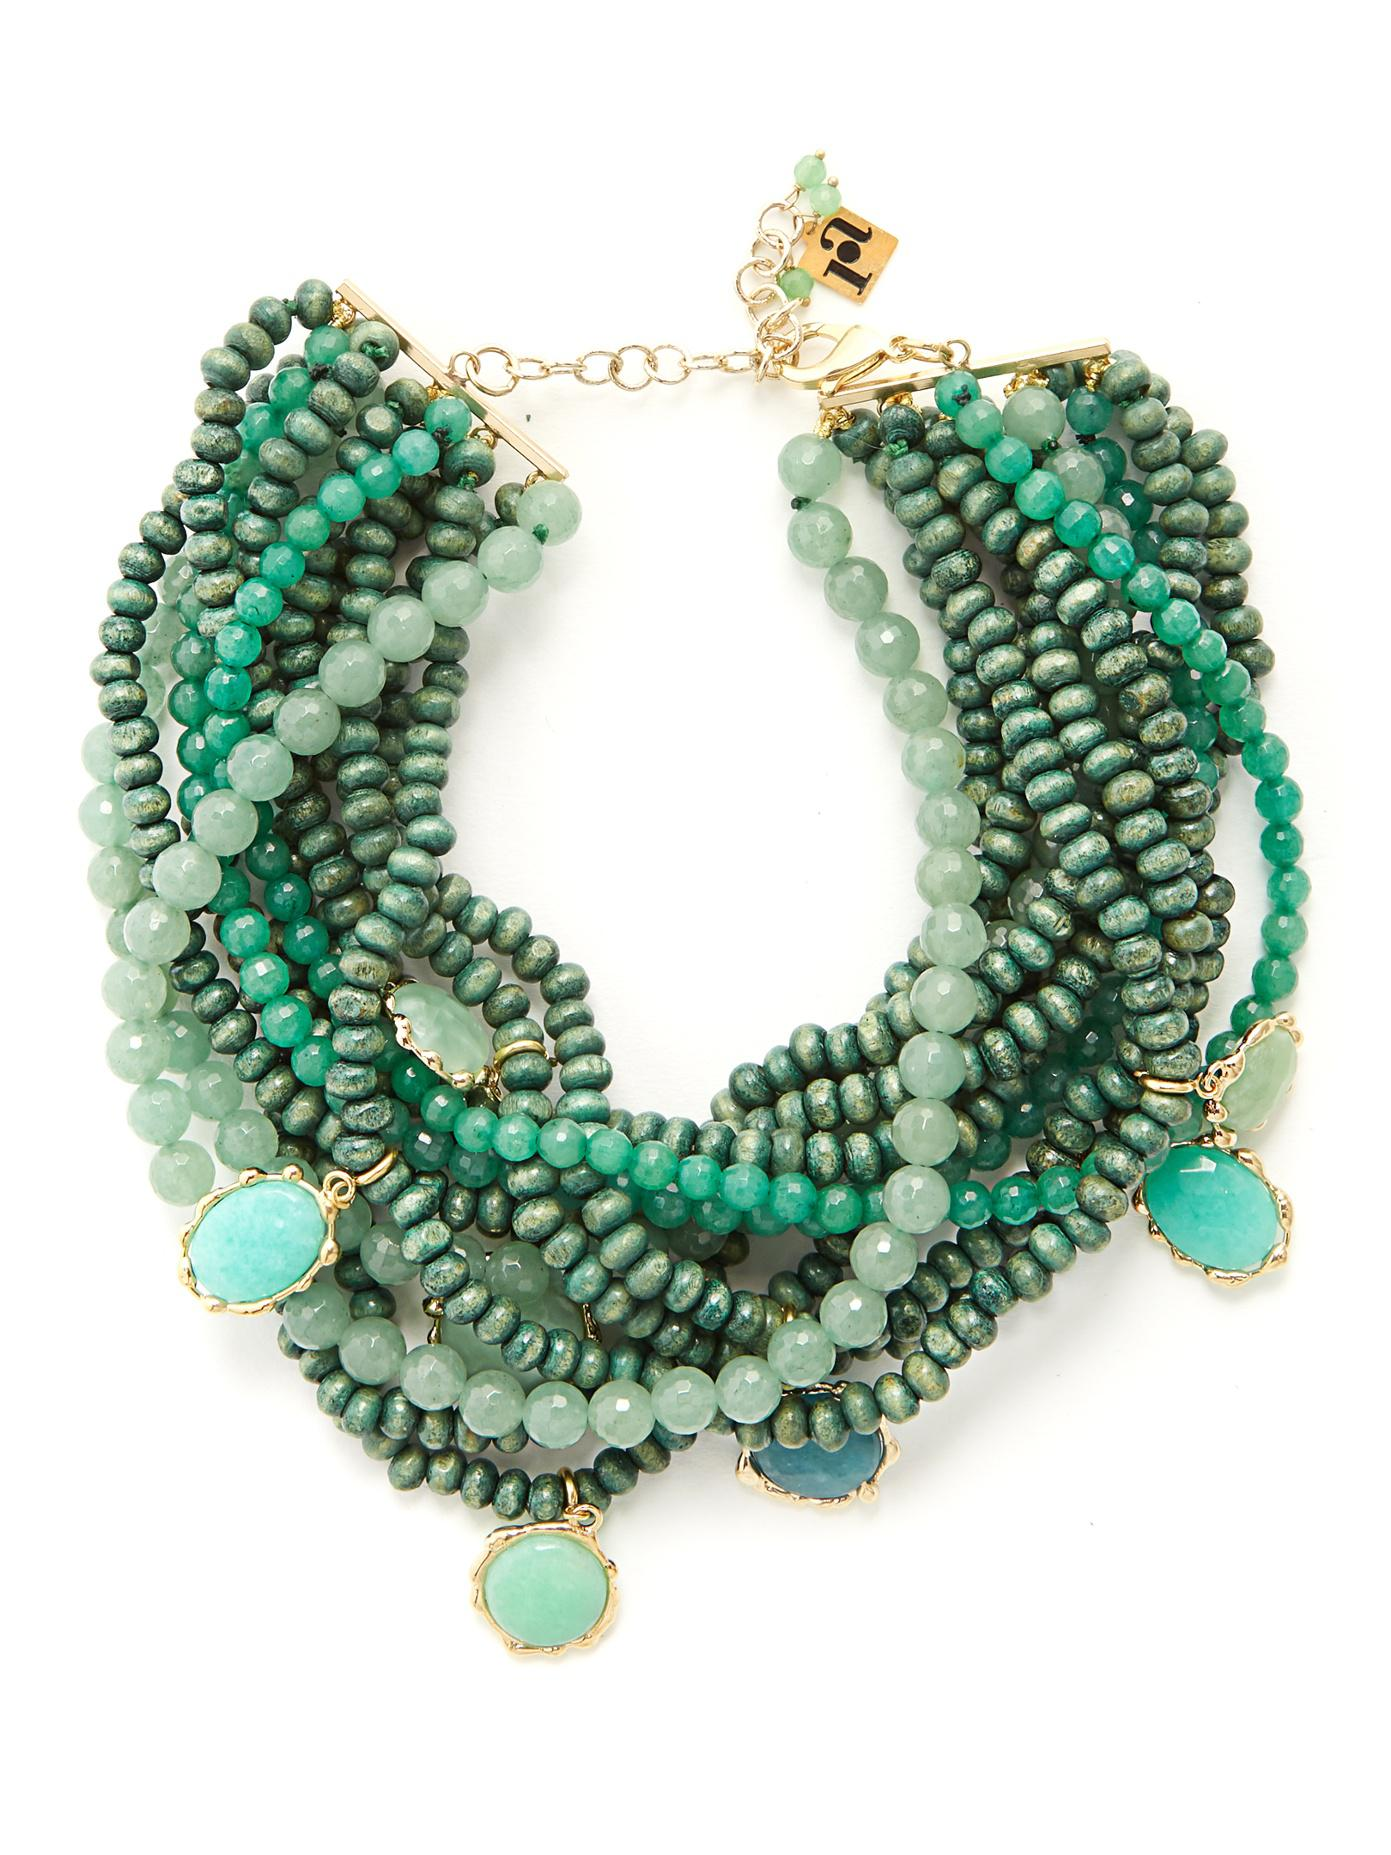 Rosantica Inganno multi-strand necklace